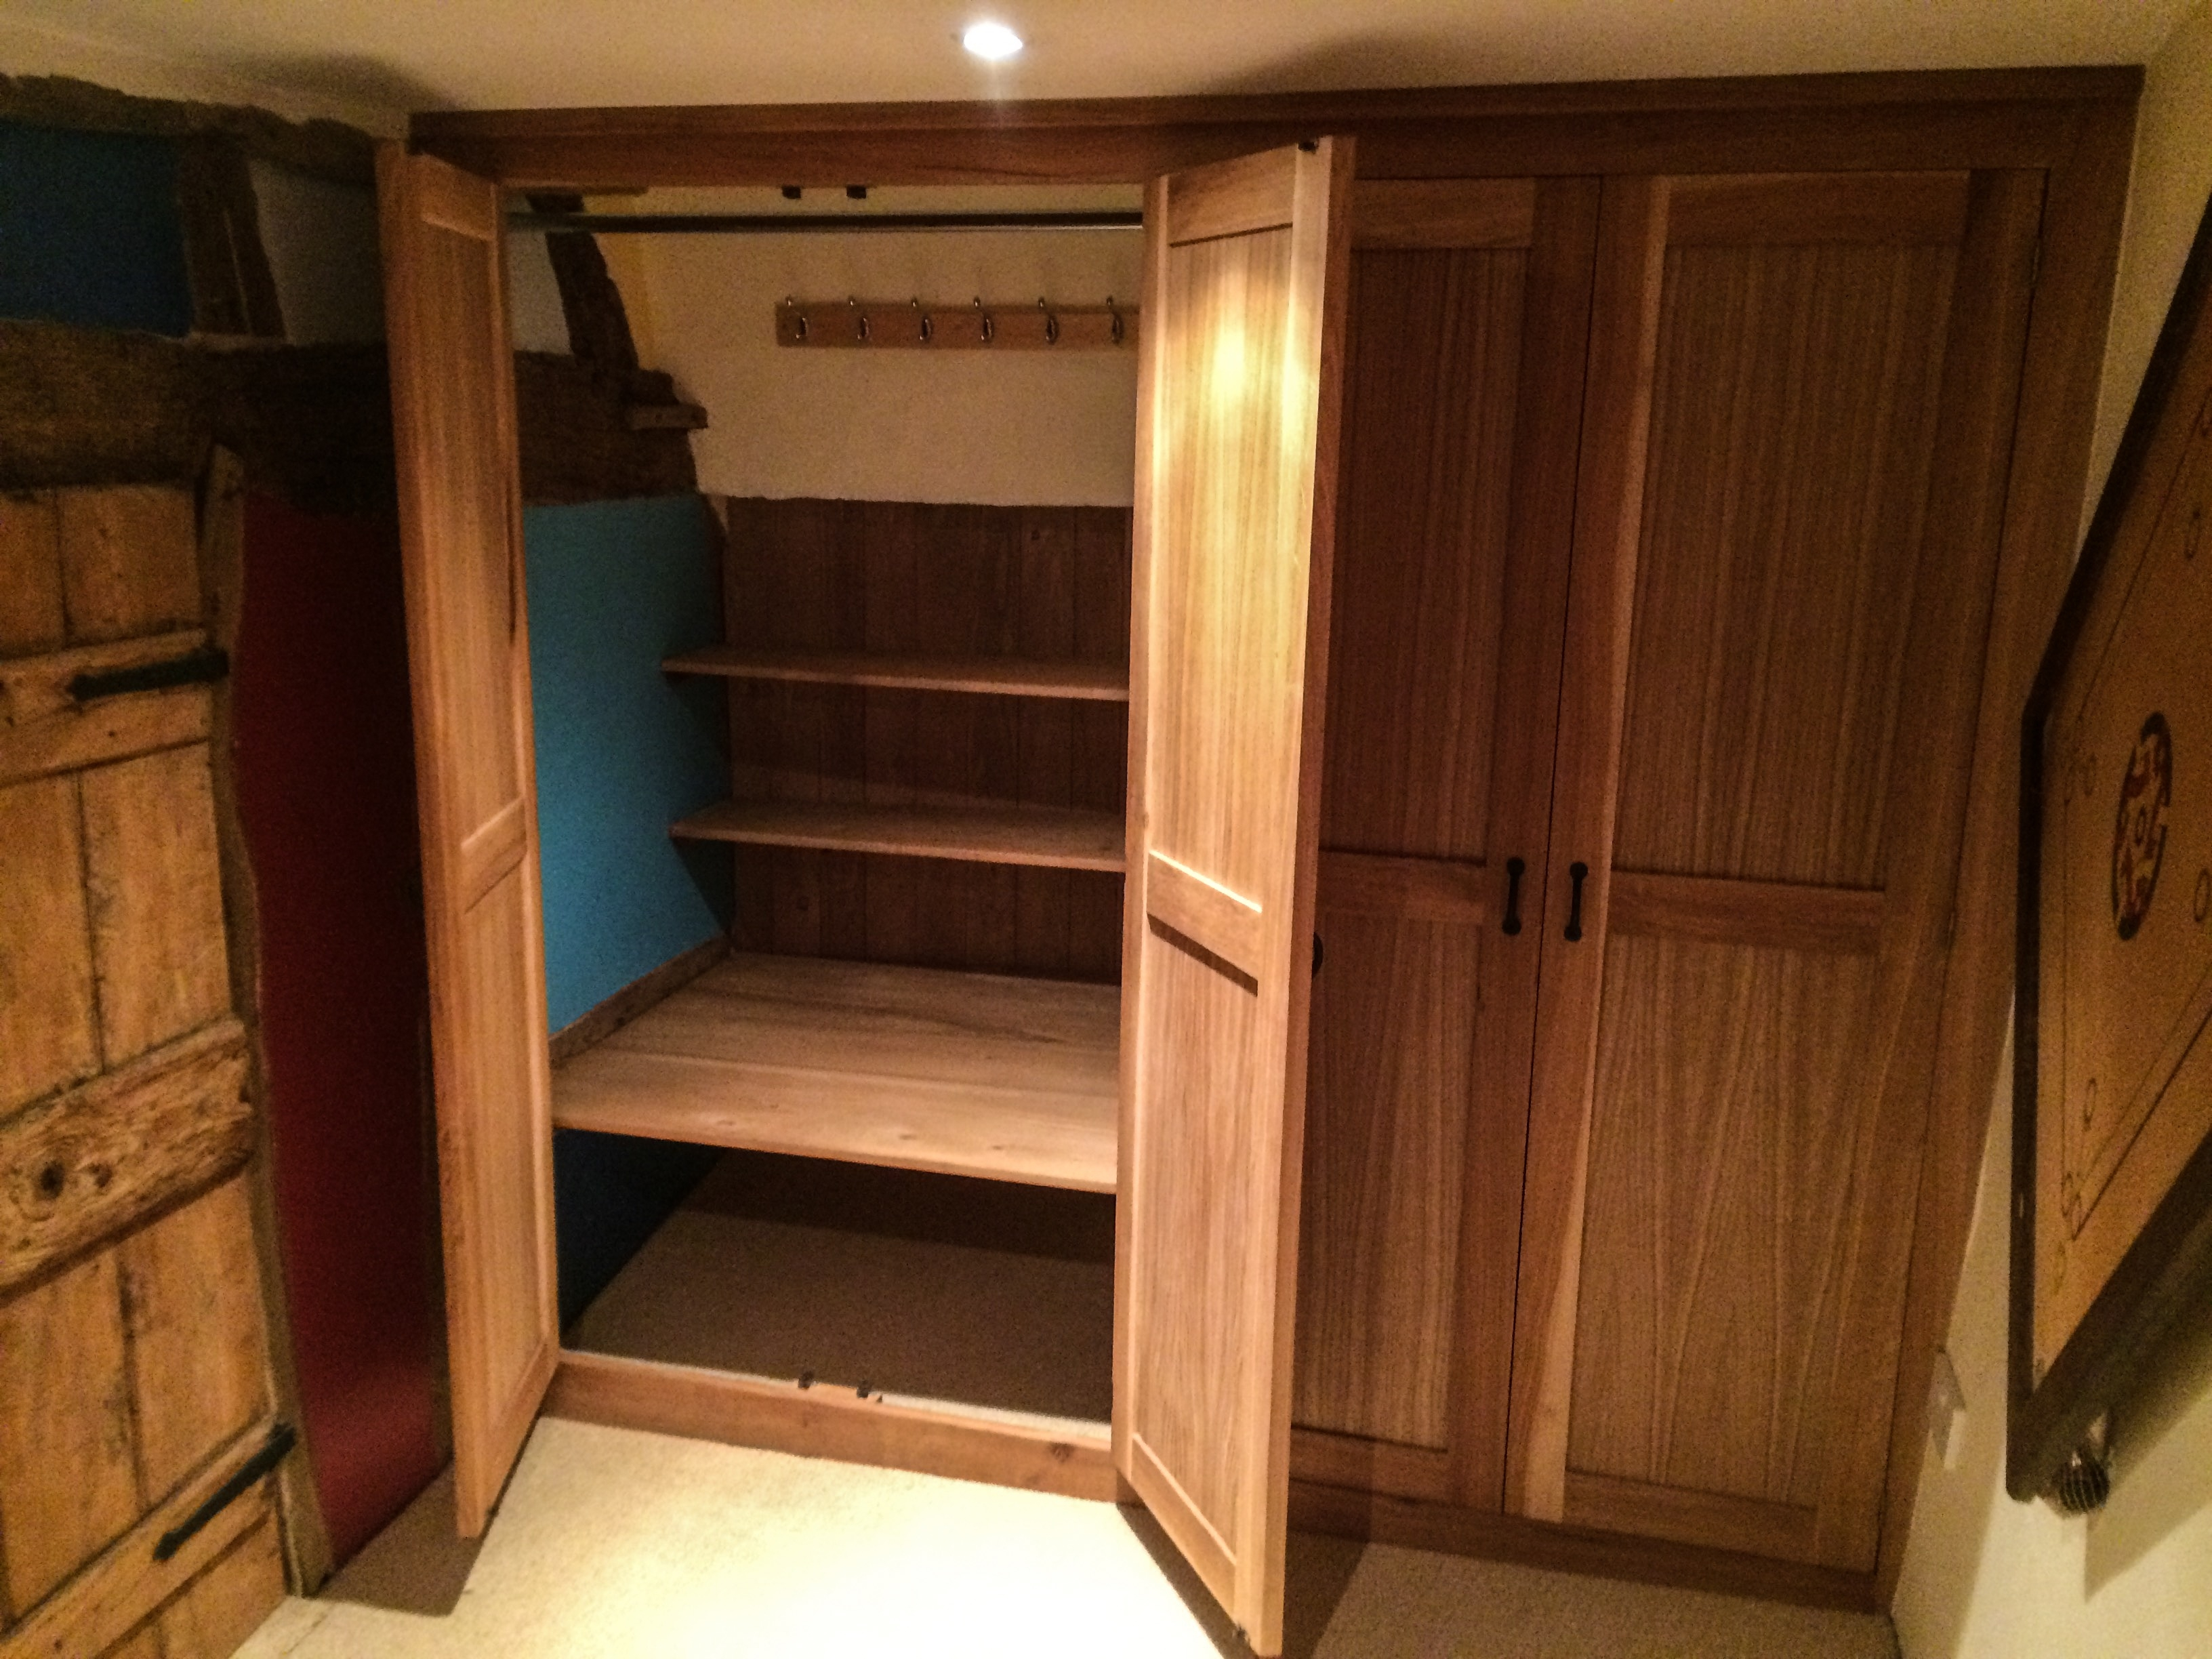 16 Best Fitted Bedroom Furniture Images On Pinterest Regarding Fitted Wooden Wardrobes (View 1 of 15)